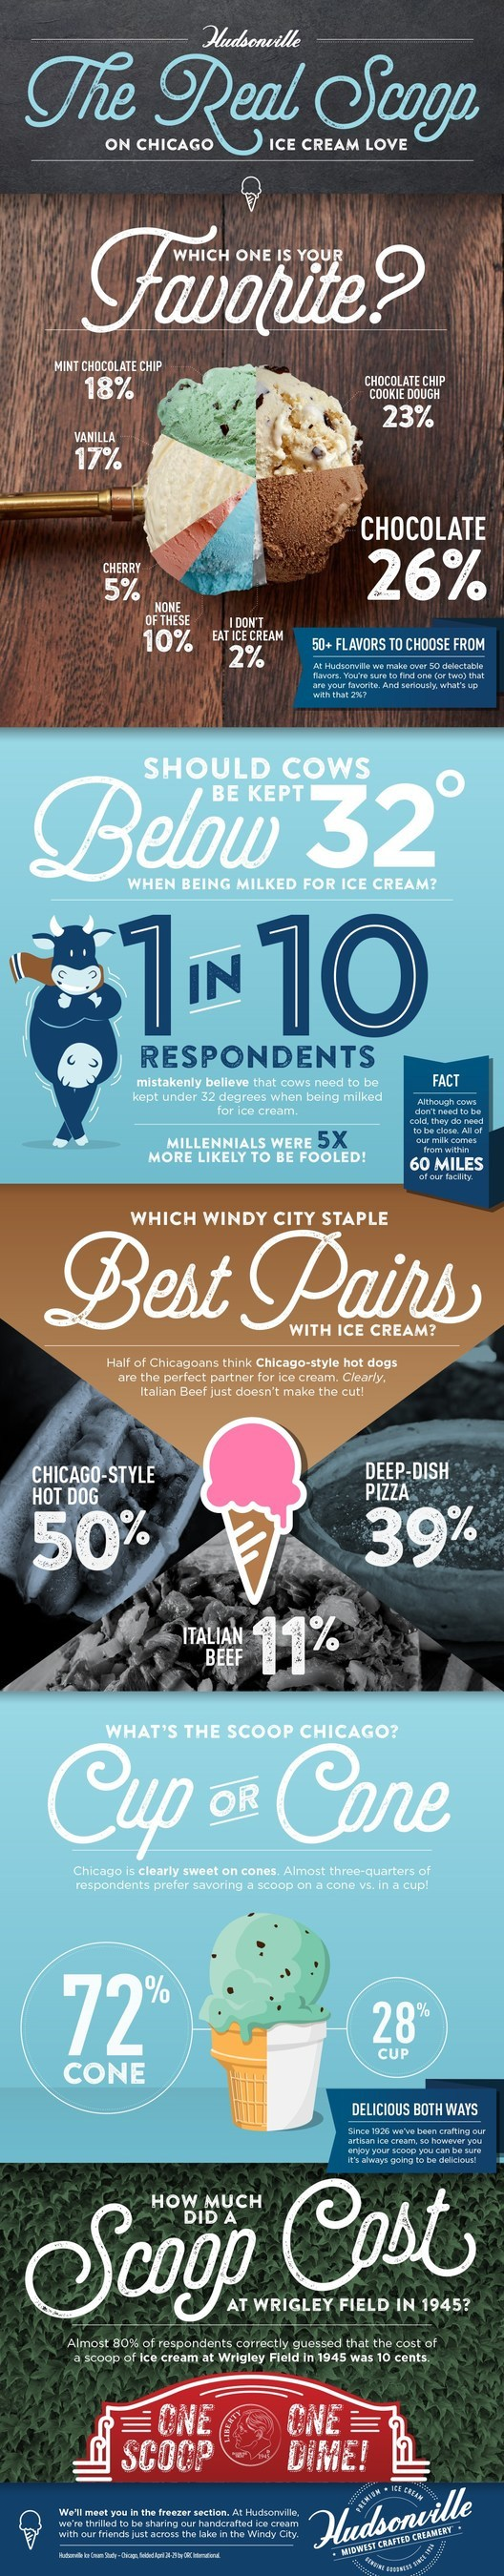 According to a survey of Chicago residents commissioned by Hudsonville Ice Cream, nearly all Chicagoans enjoy the sweet, creamy taste of ice cream (98 percent), but not all understand how the good stuff is made.  Hudsonville's team of artisans have been perfecting the art of ice cream making since 1926 and have introduced consumers to a variety of flavors that have become beloved favorites throughout the Midwest.